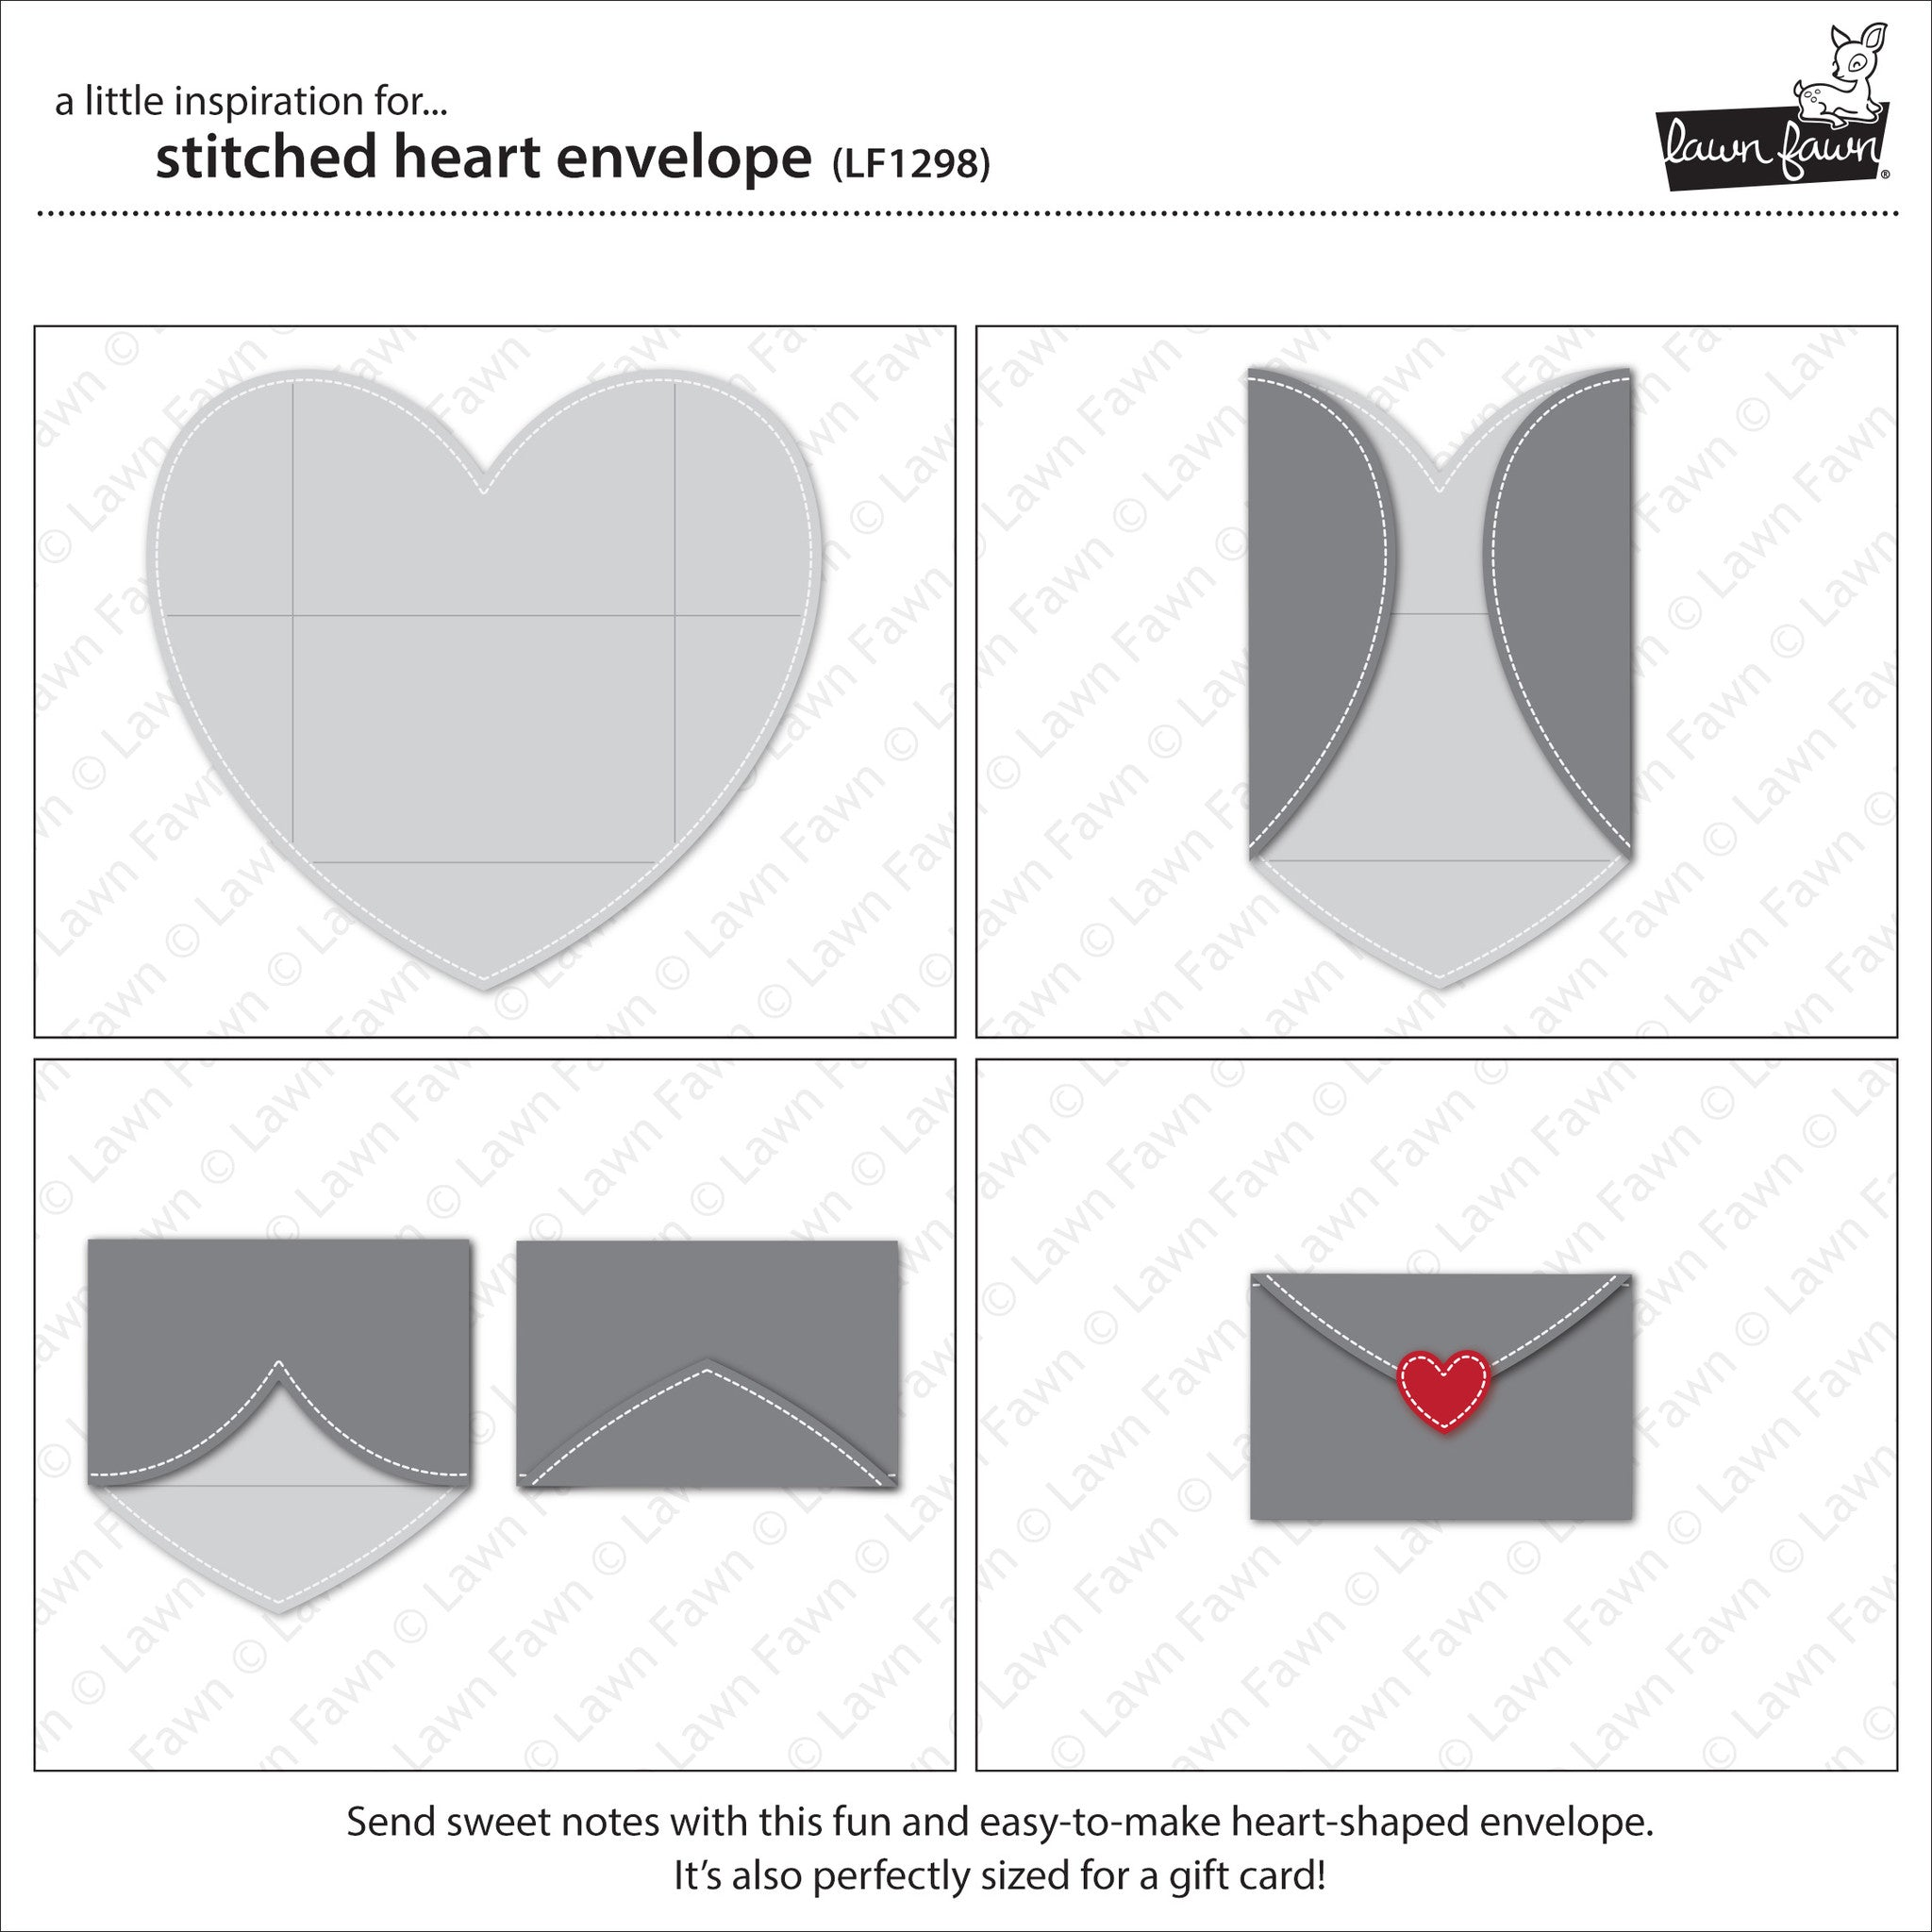 stitched heart envelope